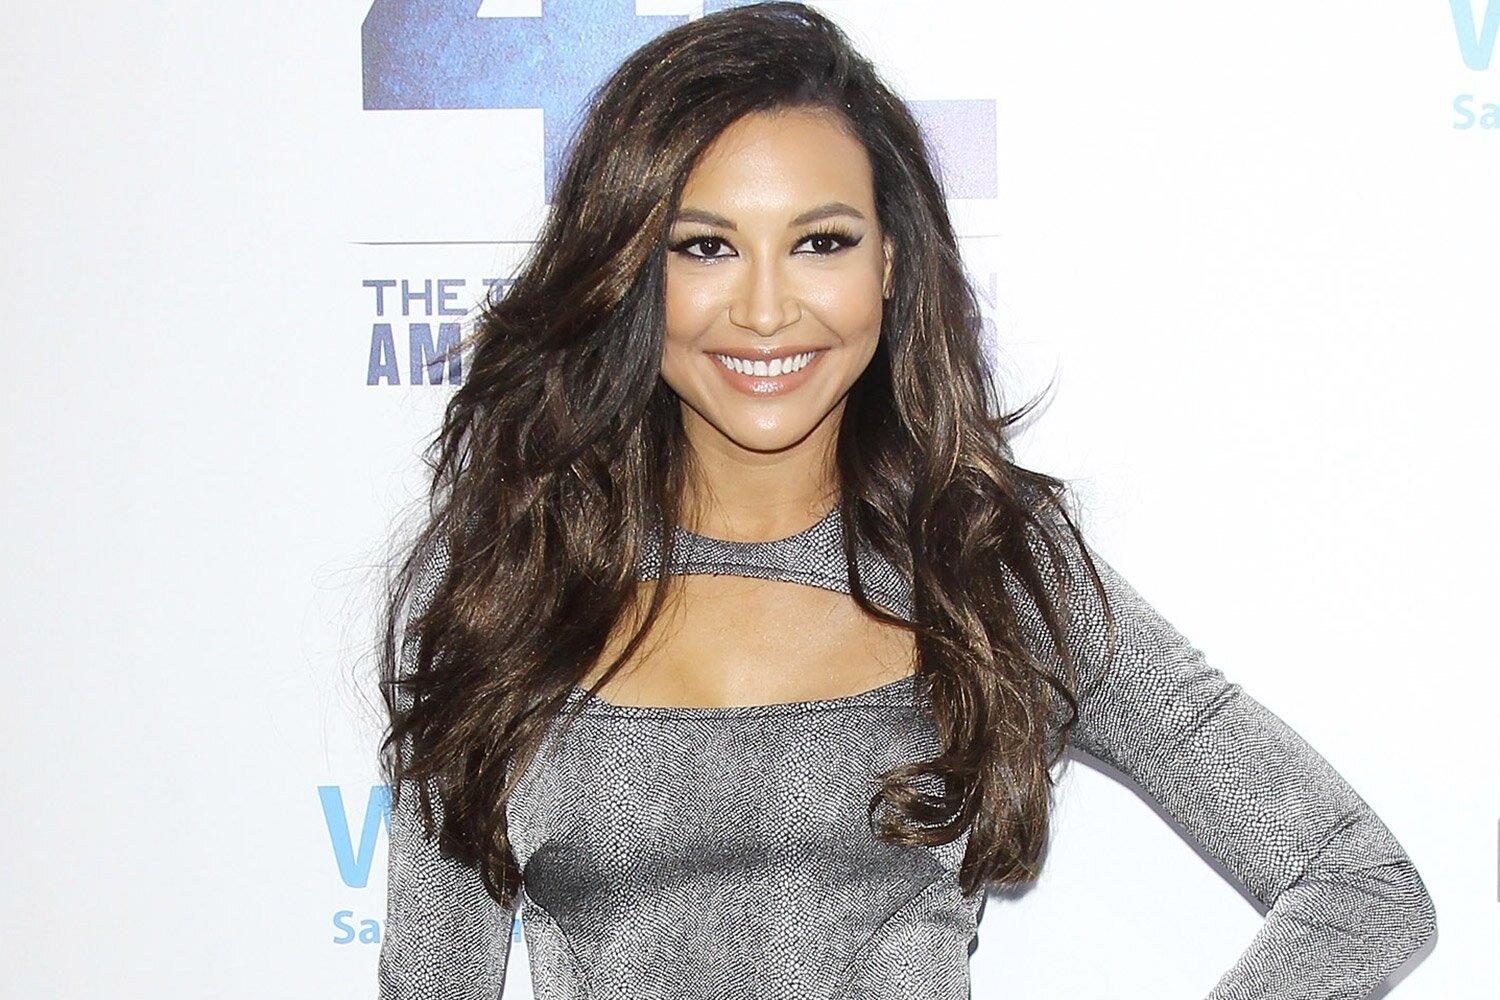 Naya Rivera Laid to Rest 2 Weeks After Drowning, Death ...